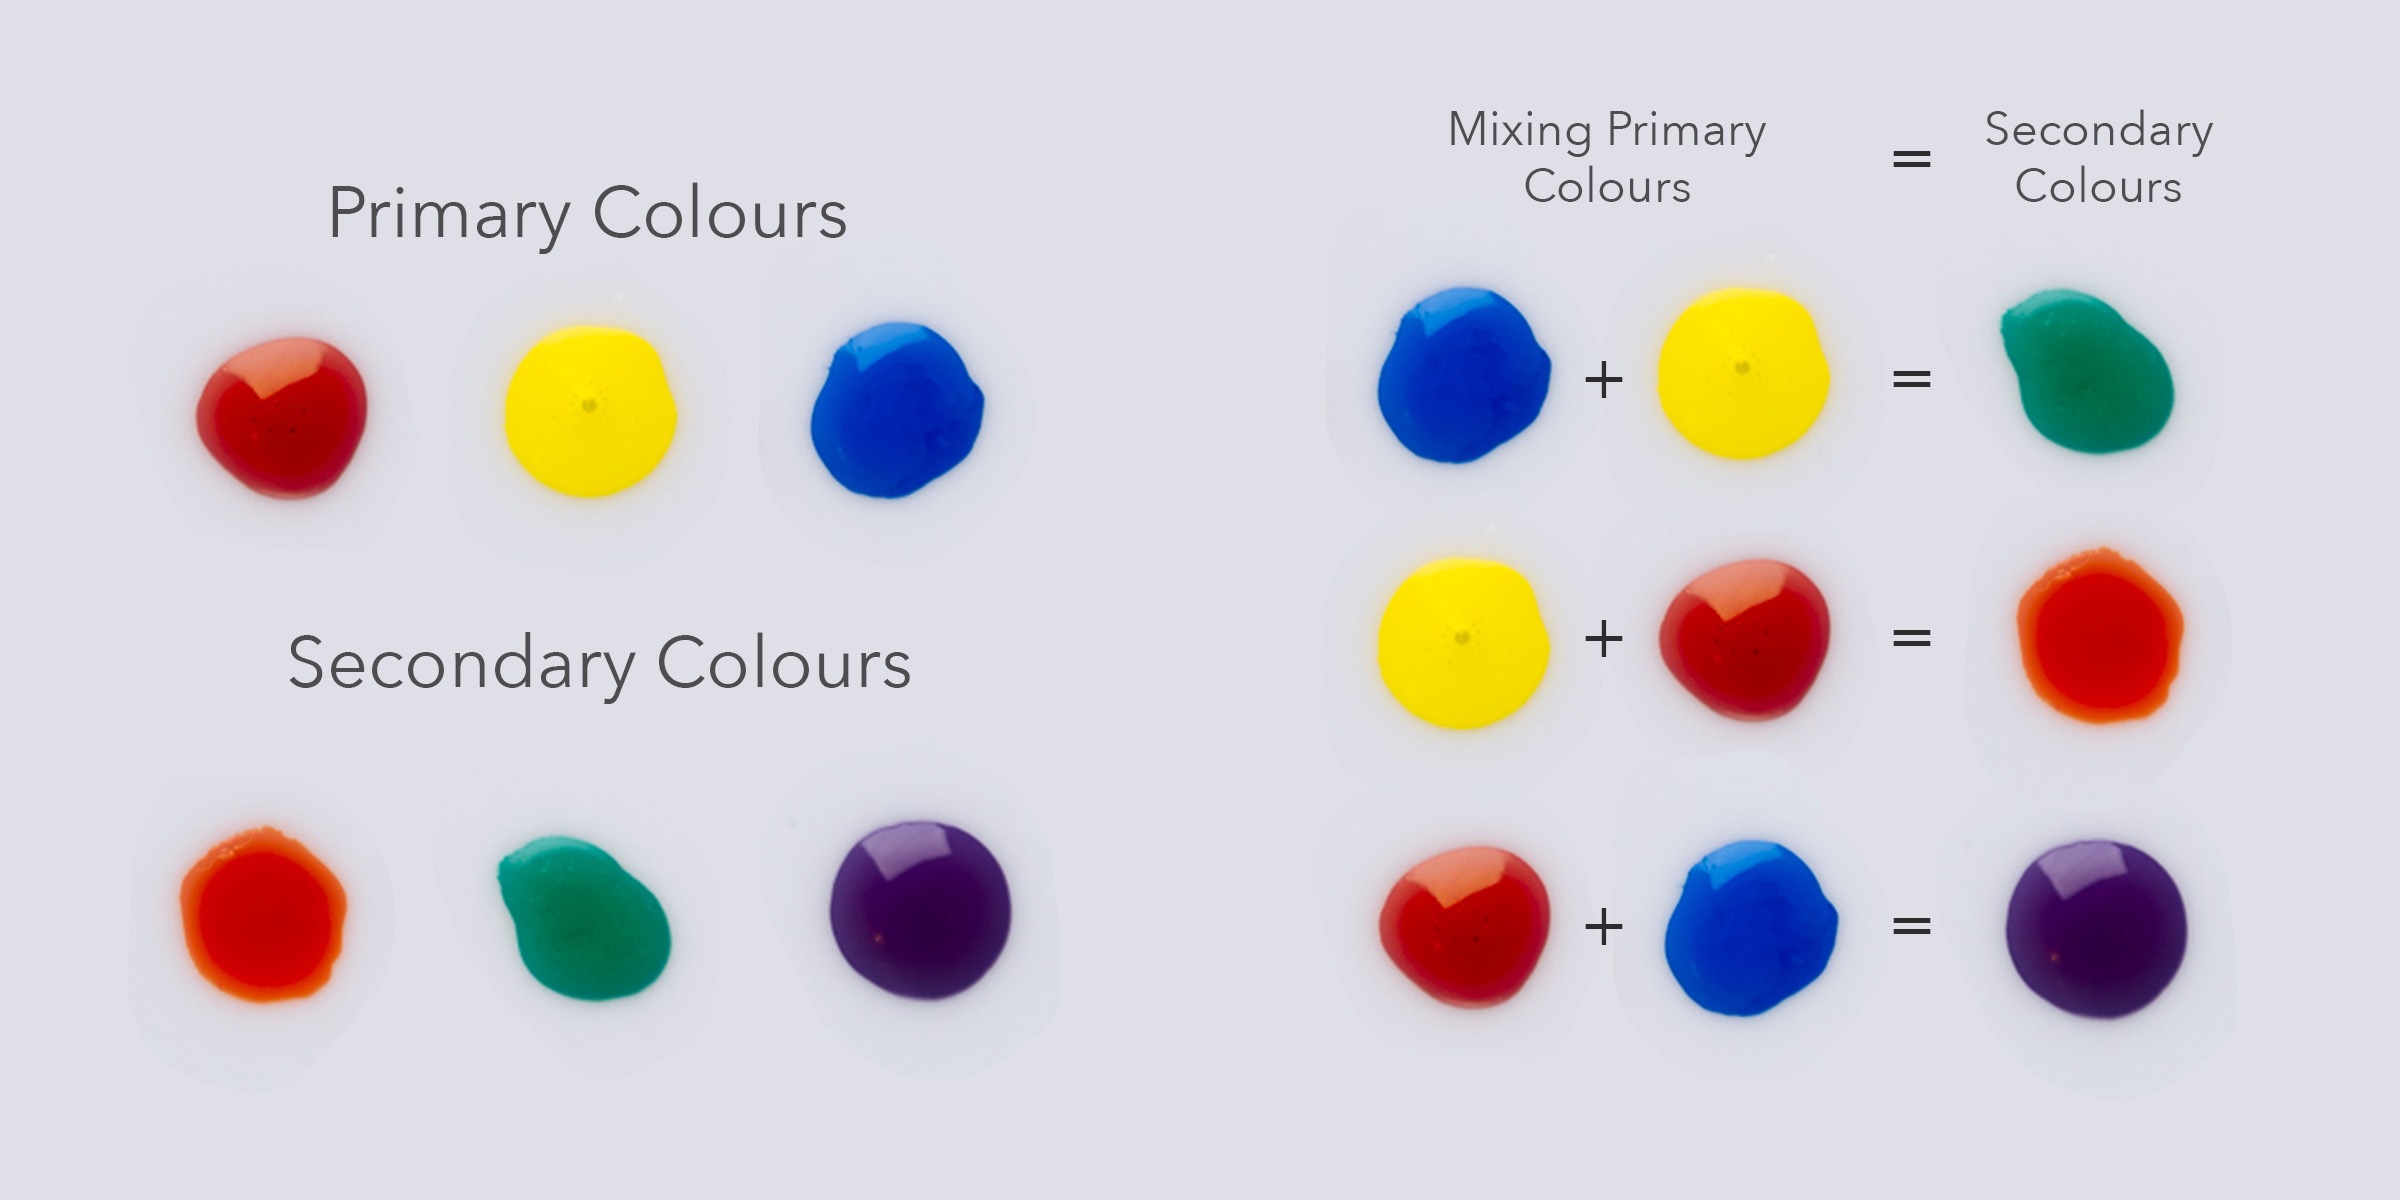 The primary colours and the secondary colours - Mixing primaries will result in secondary colours.